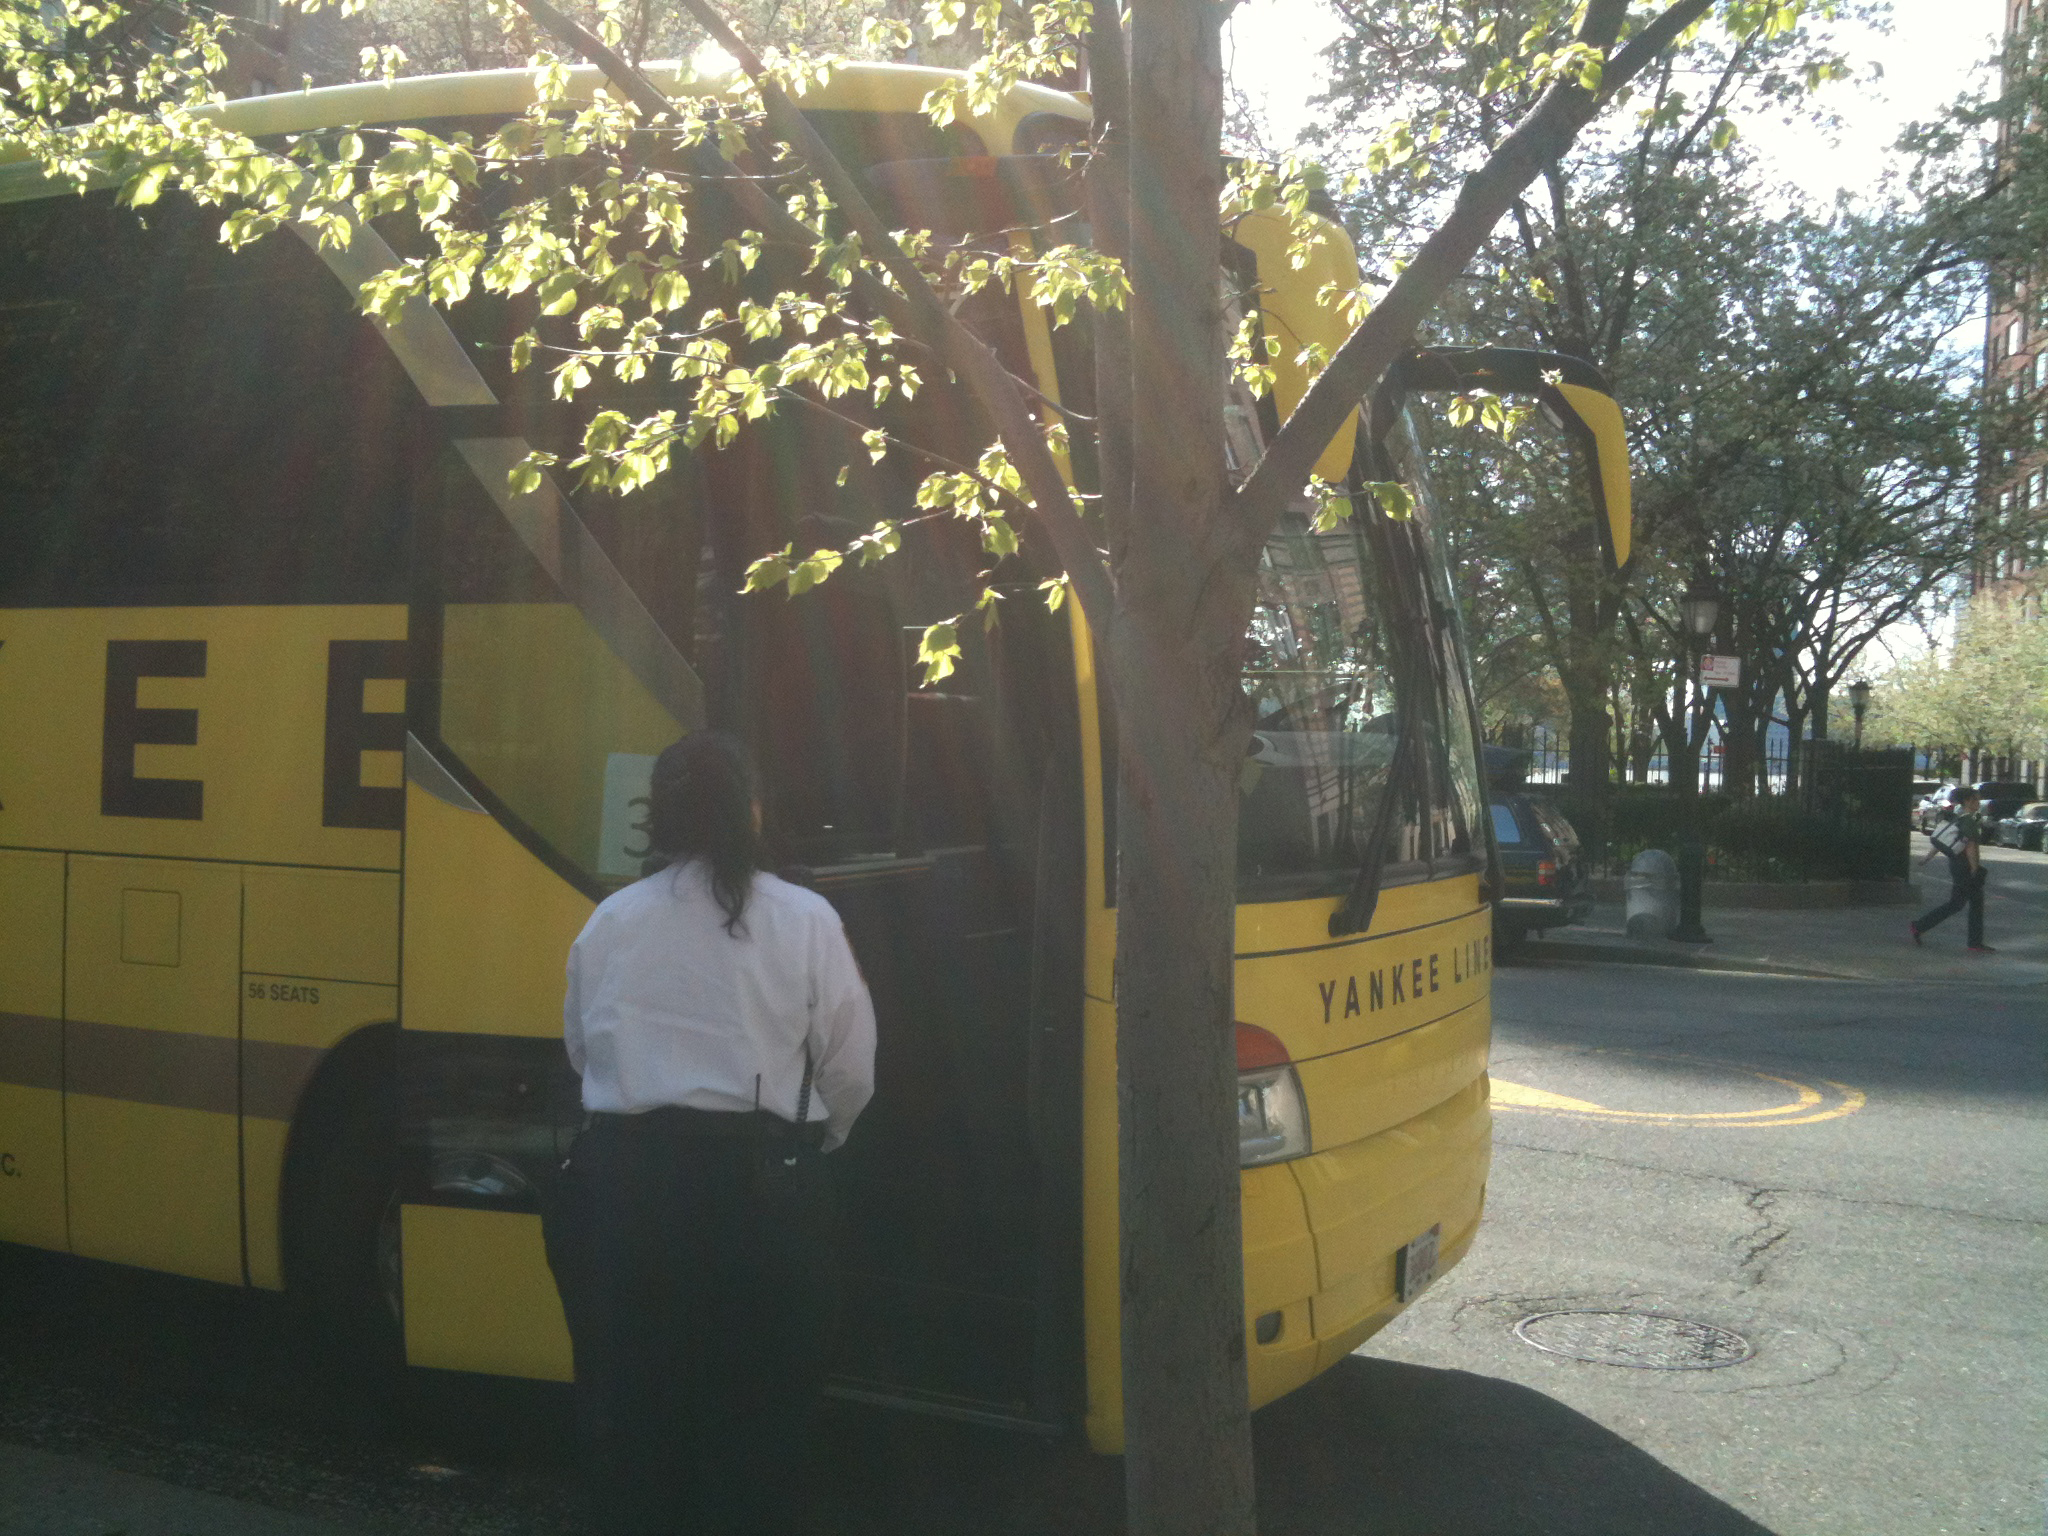 NYPD at yellow tour bus